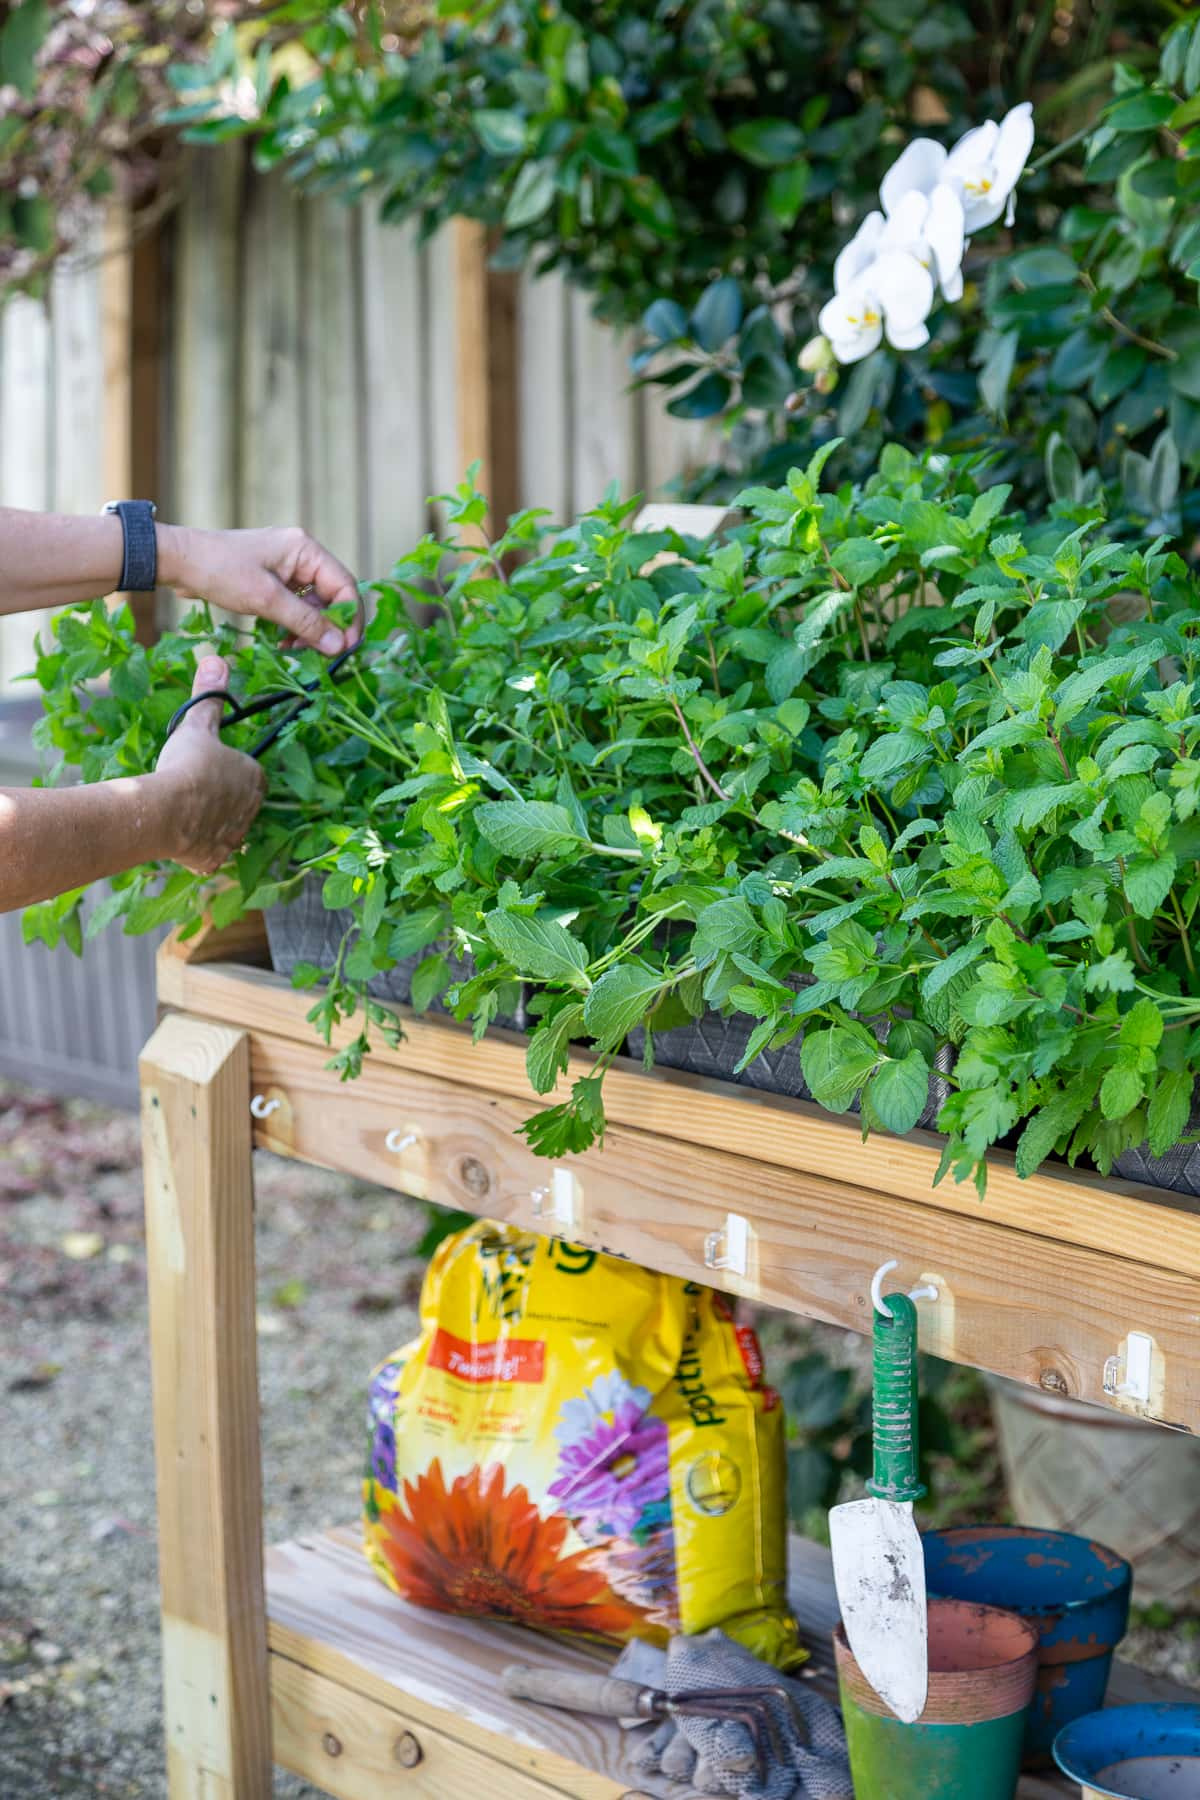 clipping herbs from a rolling potting bench